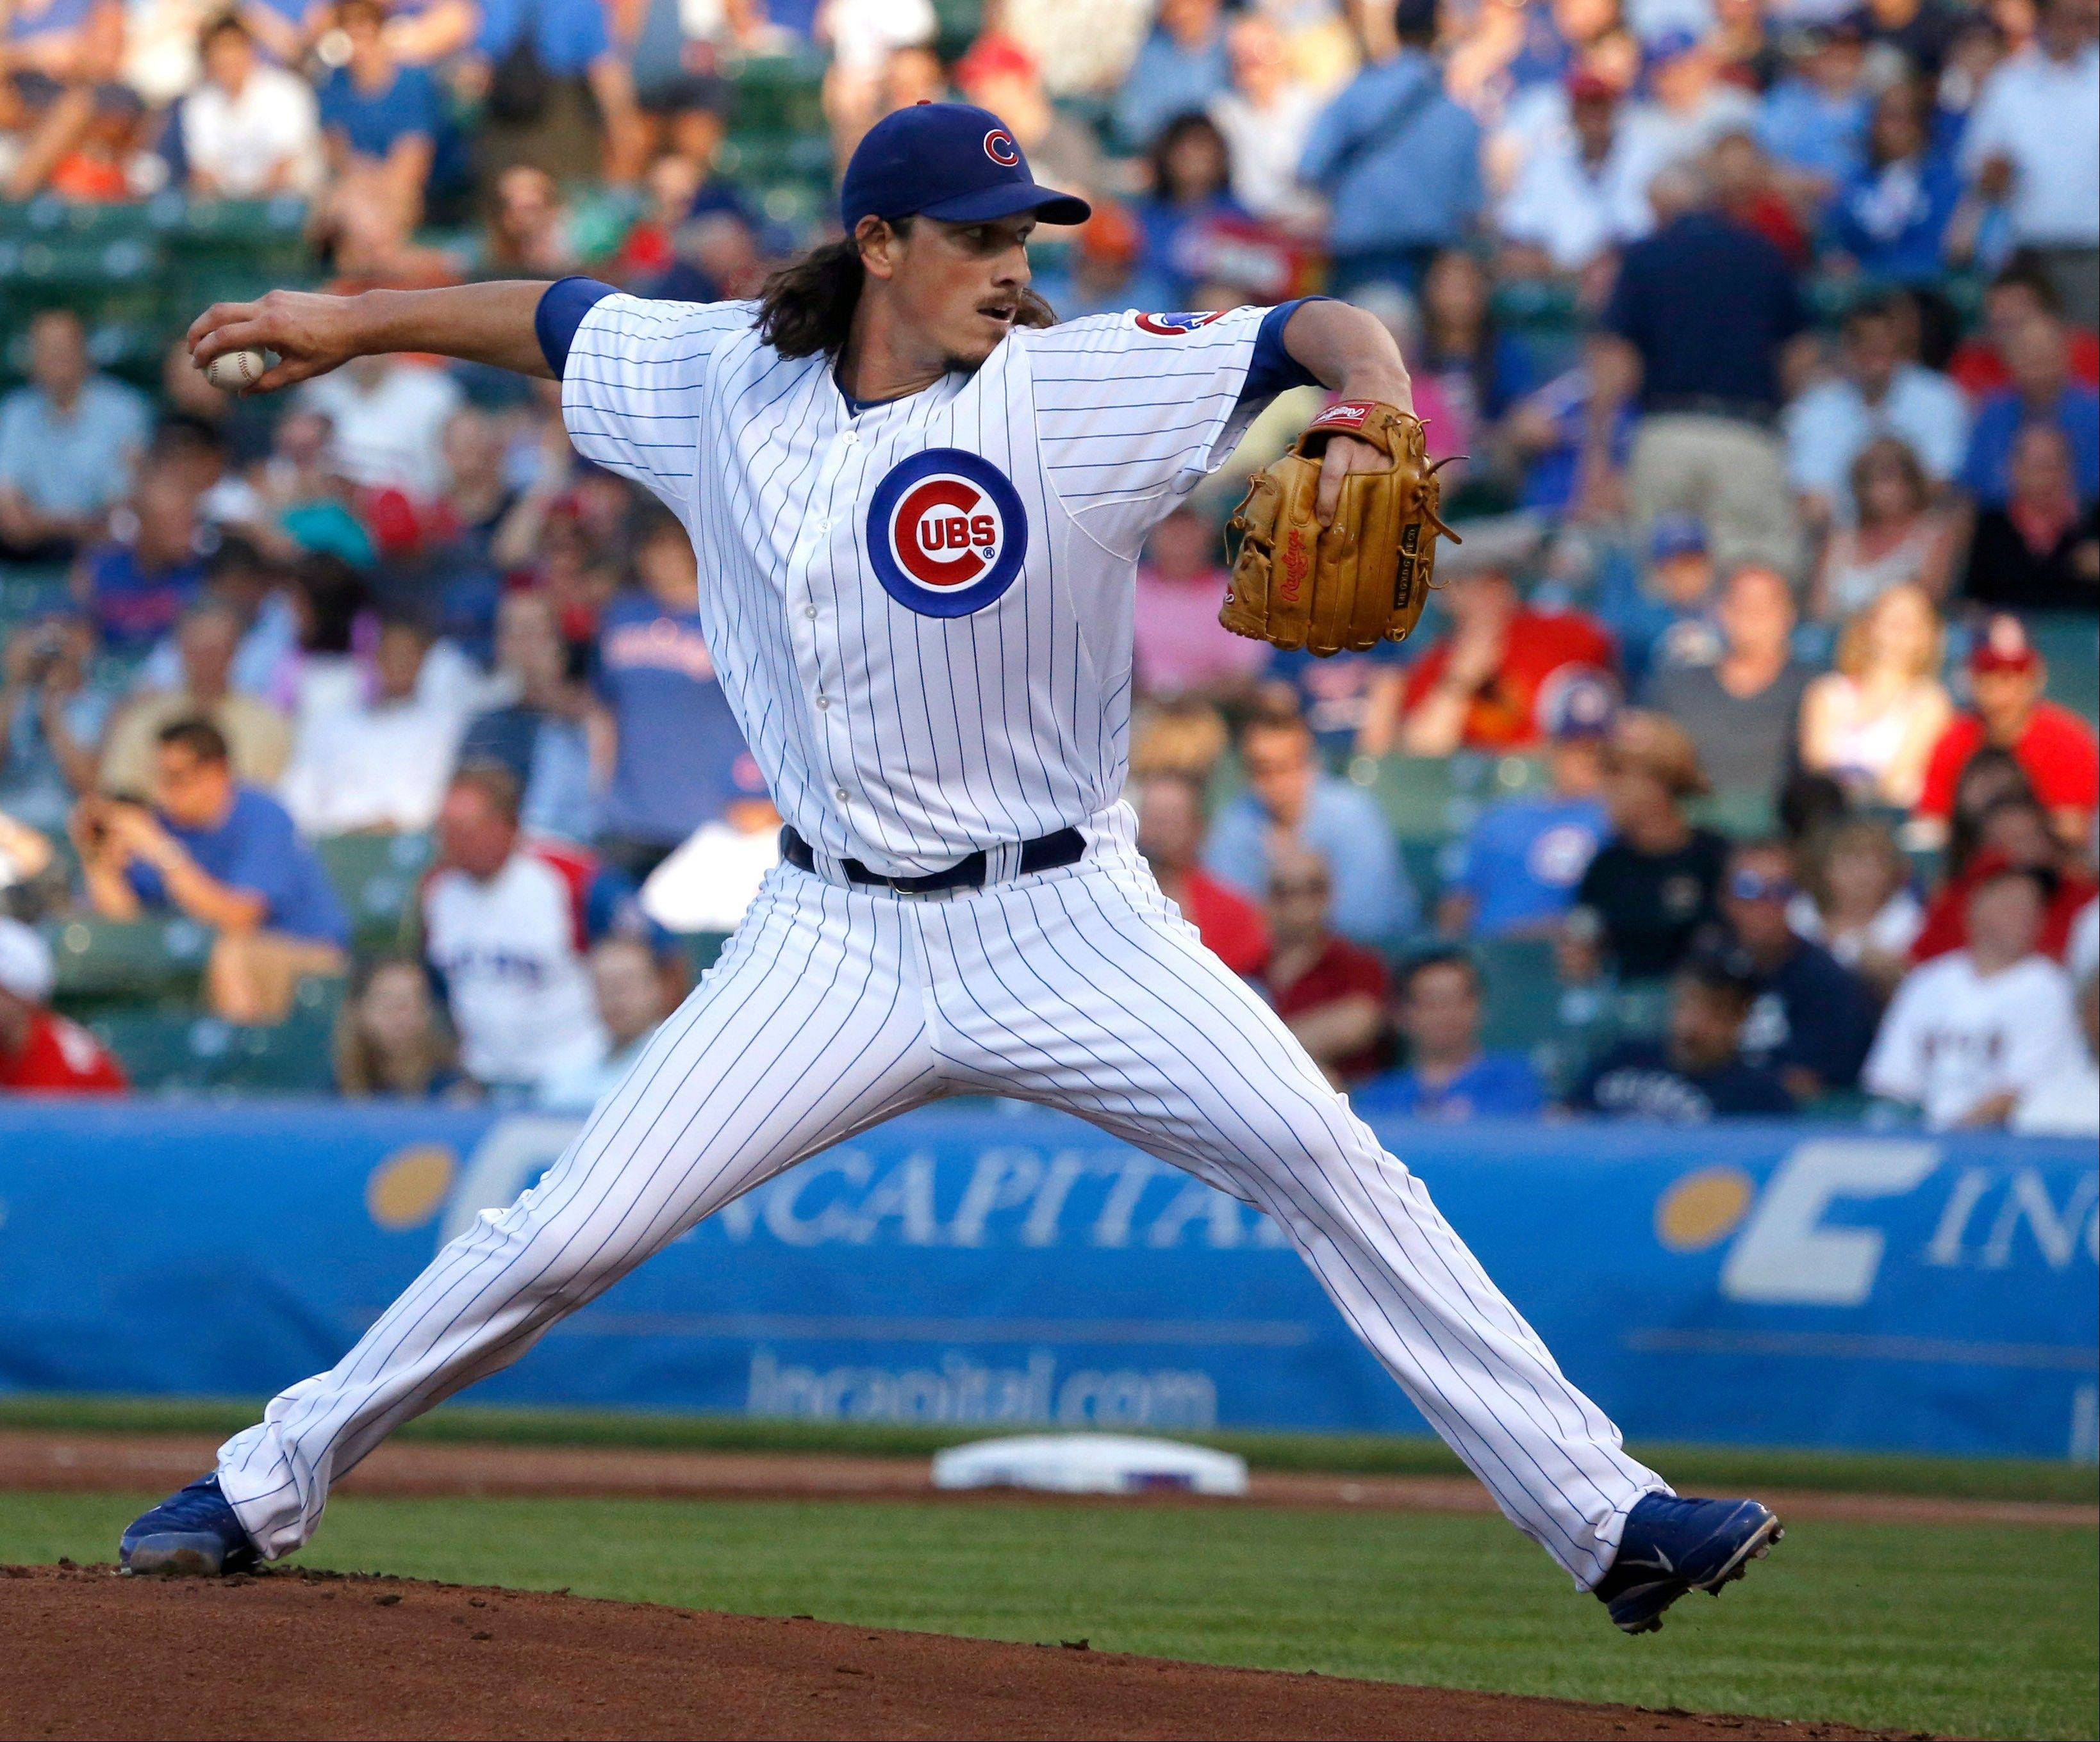 Cubs, Samardzia agree to 1-year deal